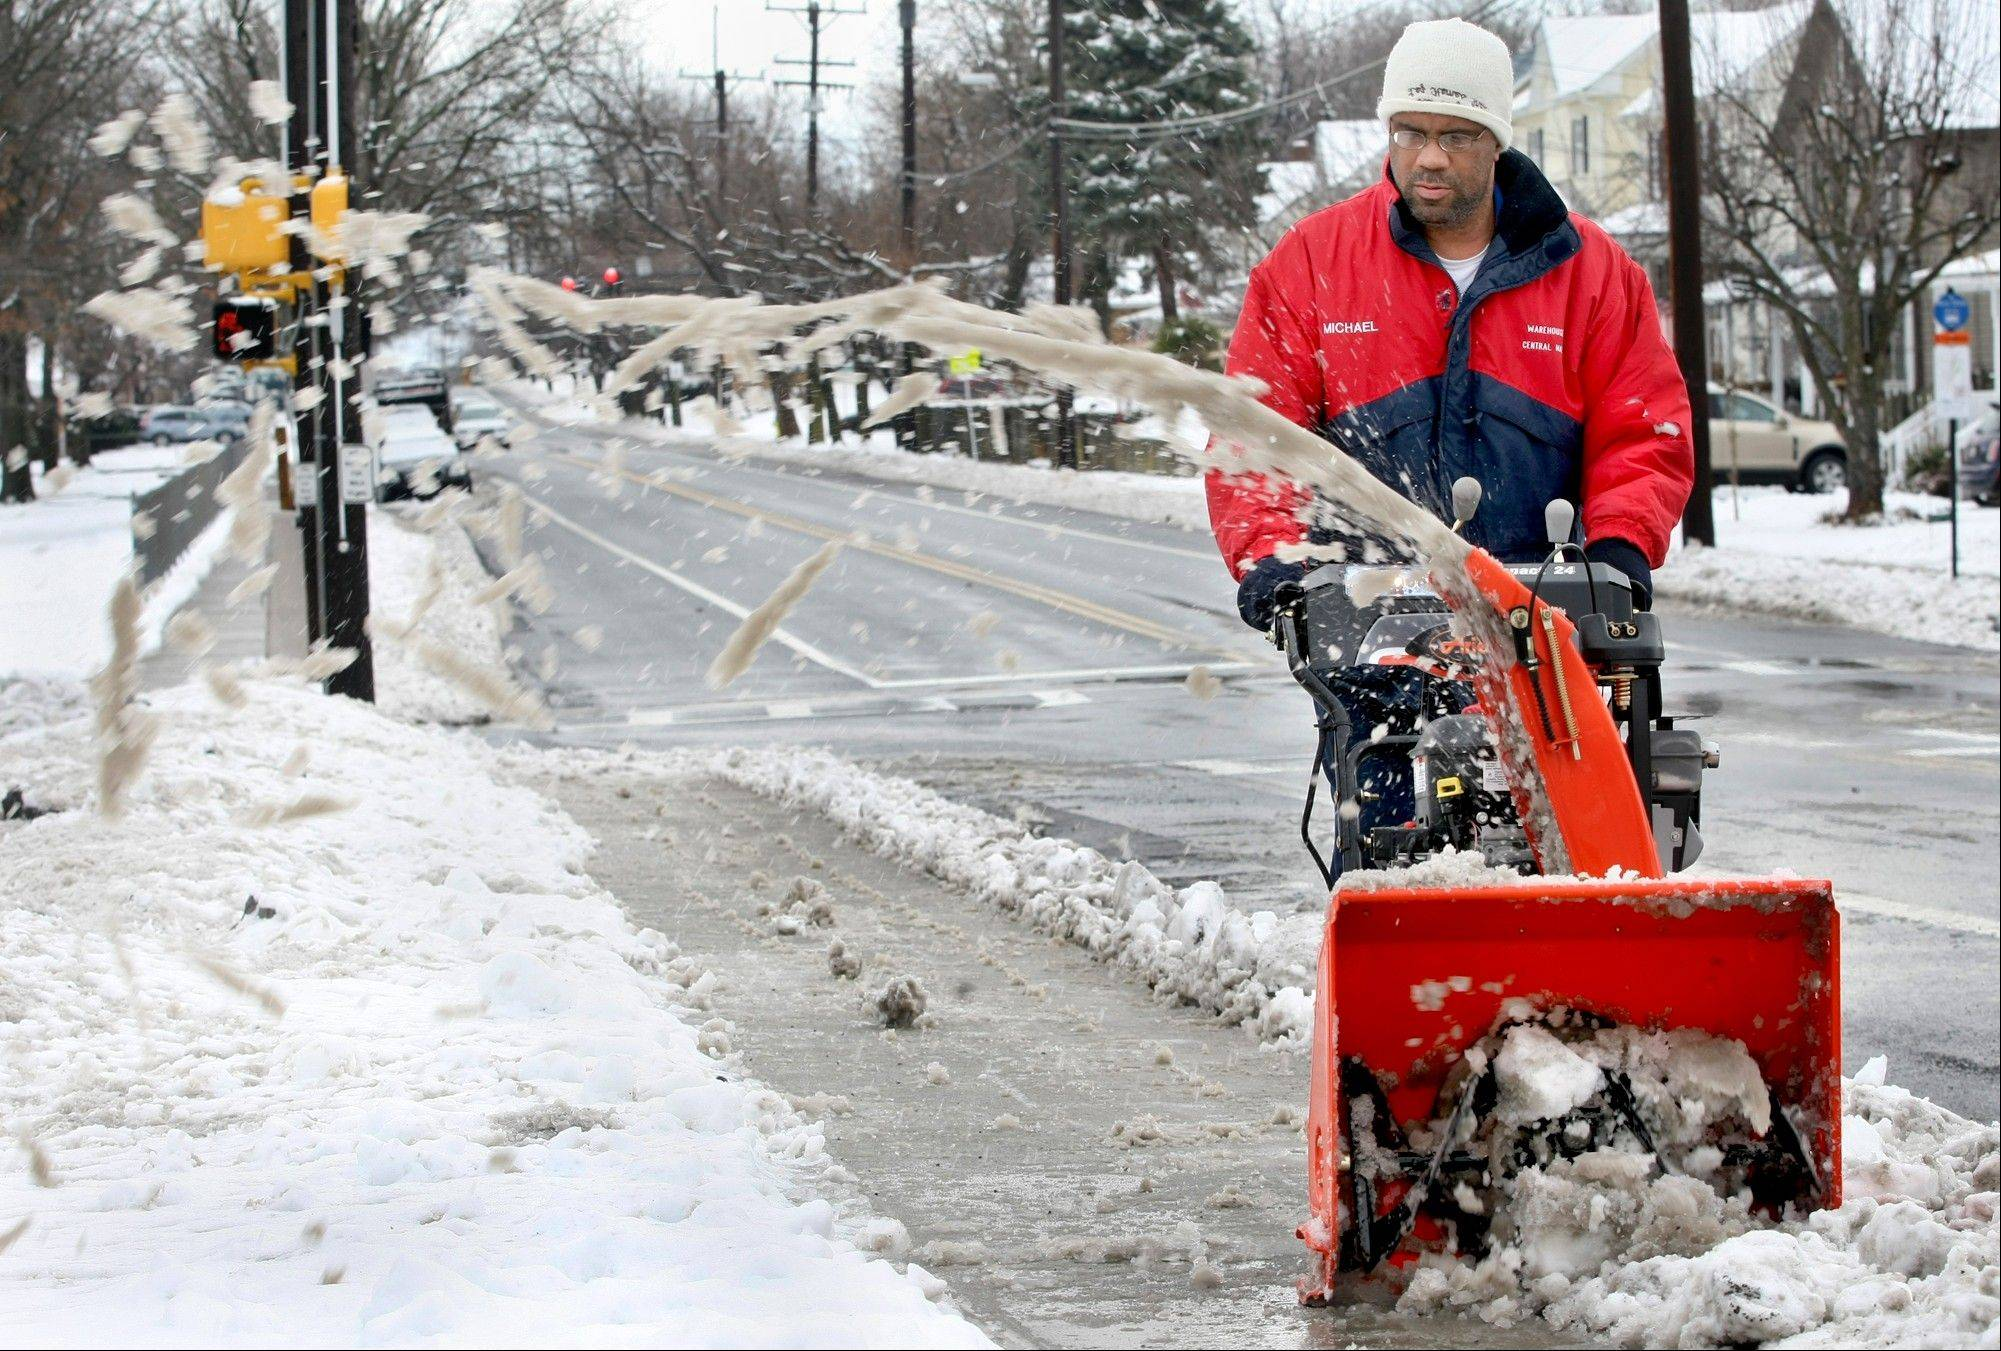 Storm heads to Midwest as East Coast digs out